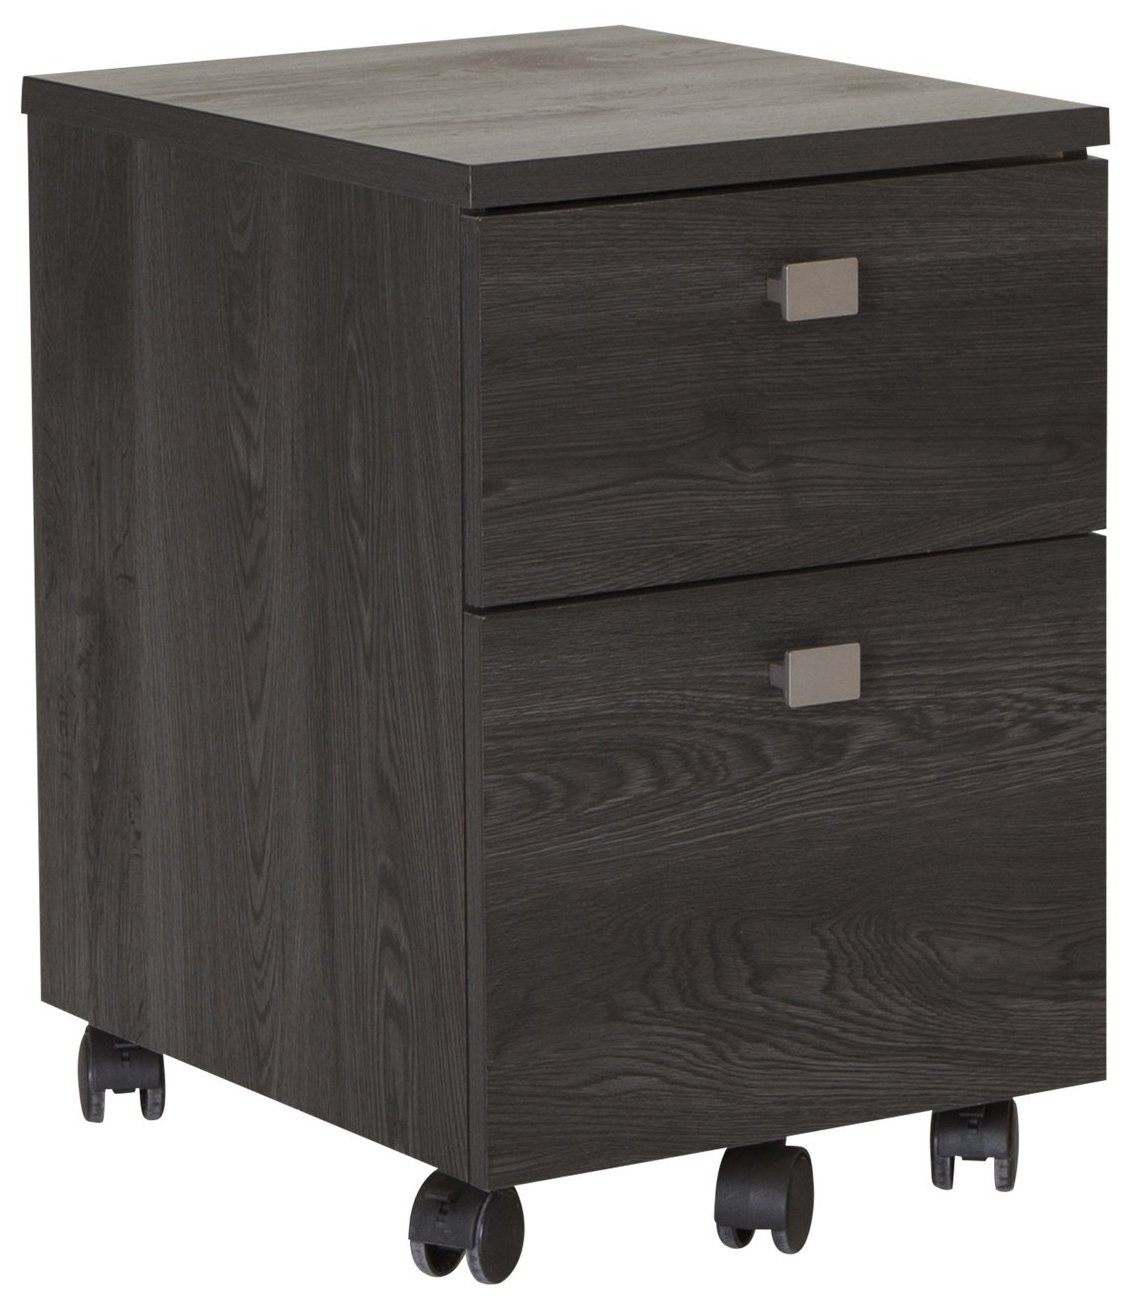 South Shore 2-Drawer Mobile File Cabinet on Casters, Gray Oak